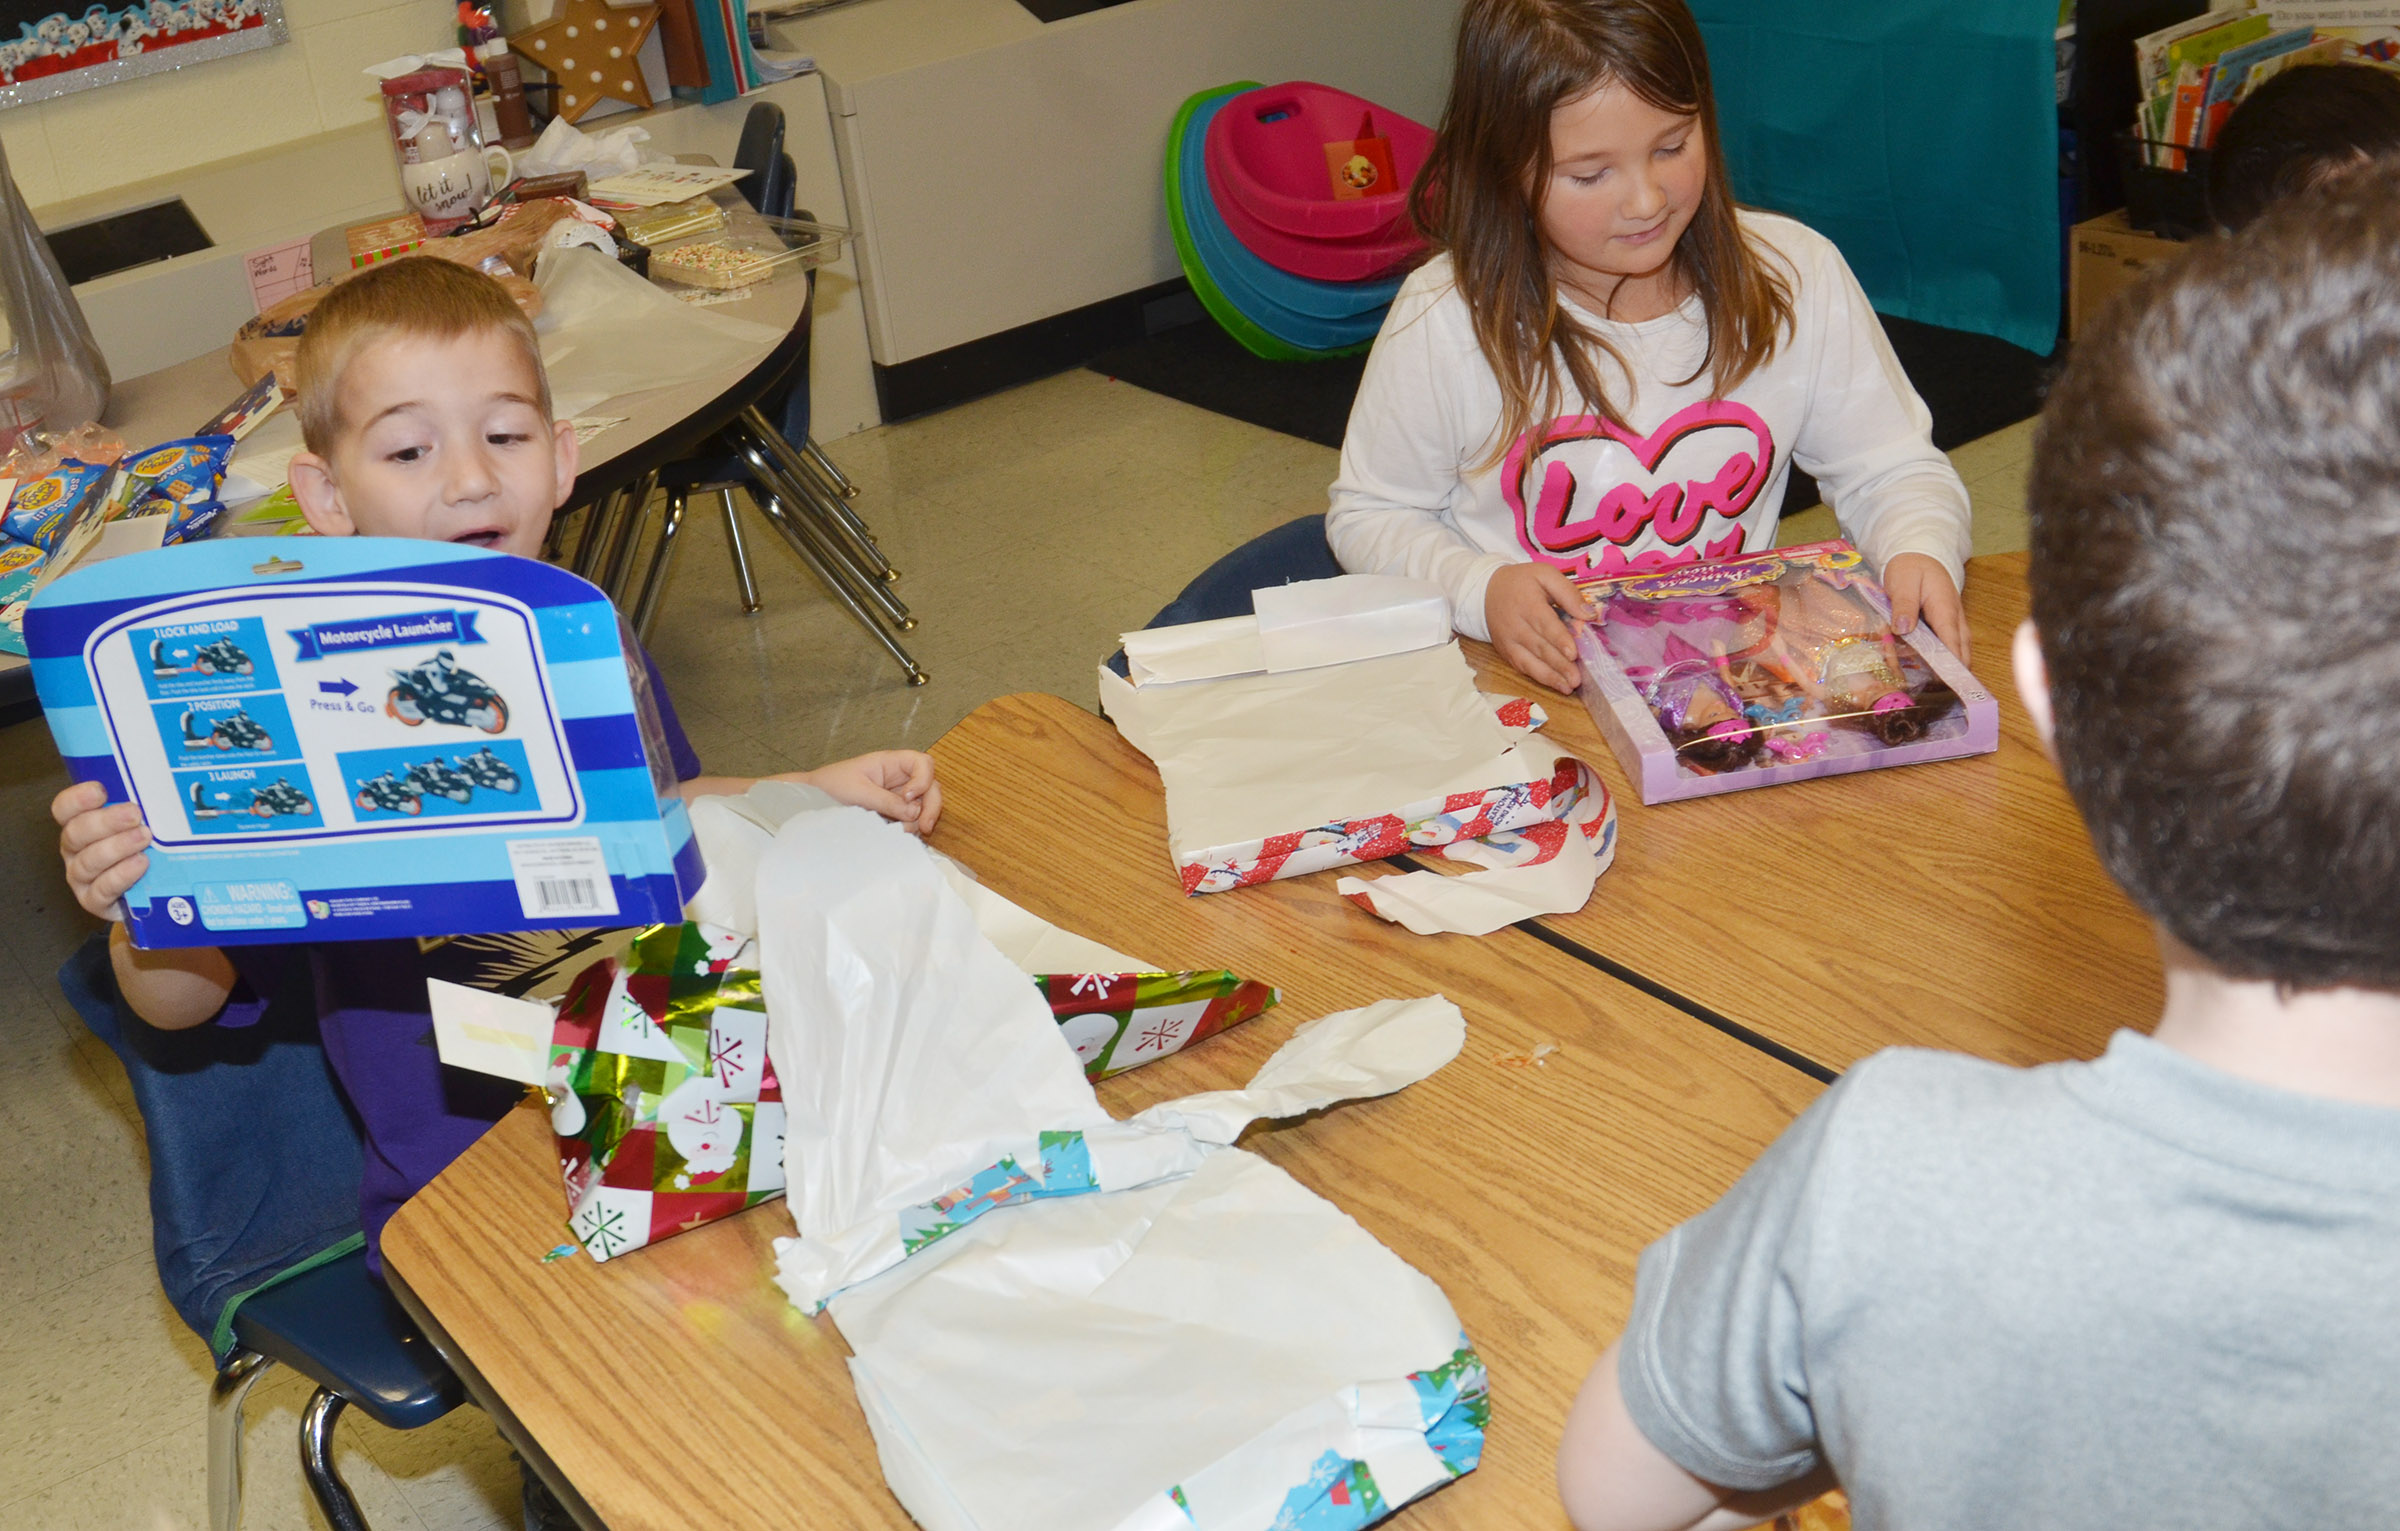 CES first-graders Mason Edwards, at left, and Destiny Rhinehart open presents they received in their class gift exchange.